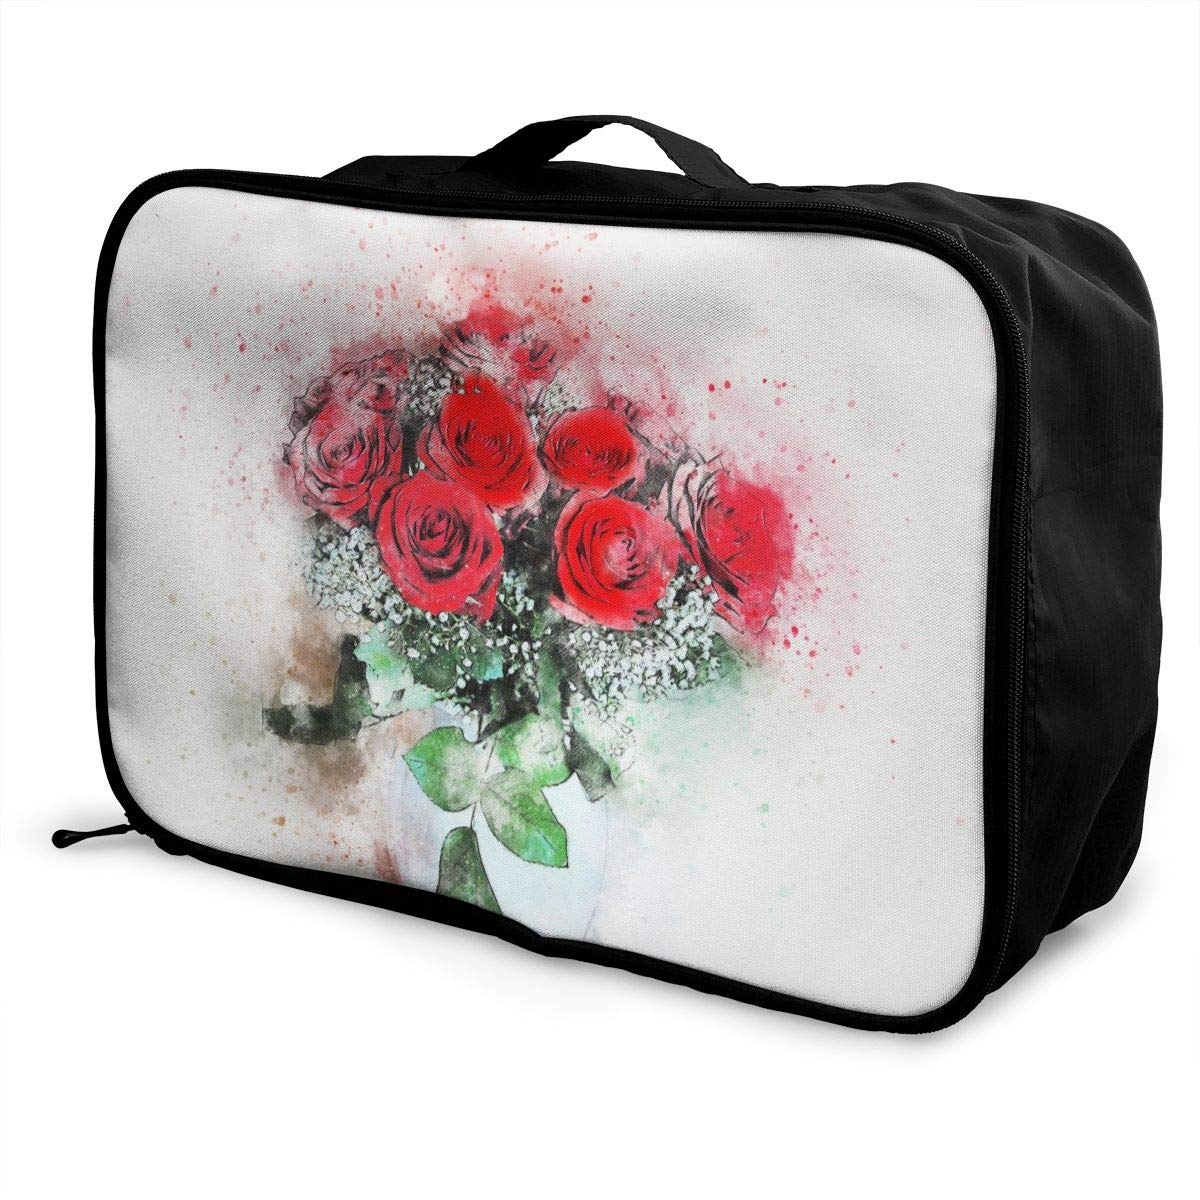 Creative Art Flowers Girl Travel Lightweight Waterproof Foldable Storage Carry Luggage Large Capacity Portable Luggage Bag Duffel Bag